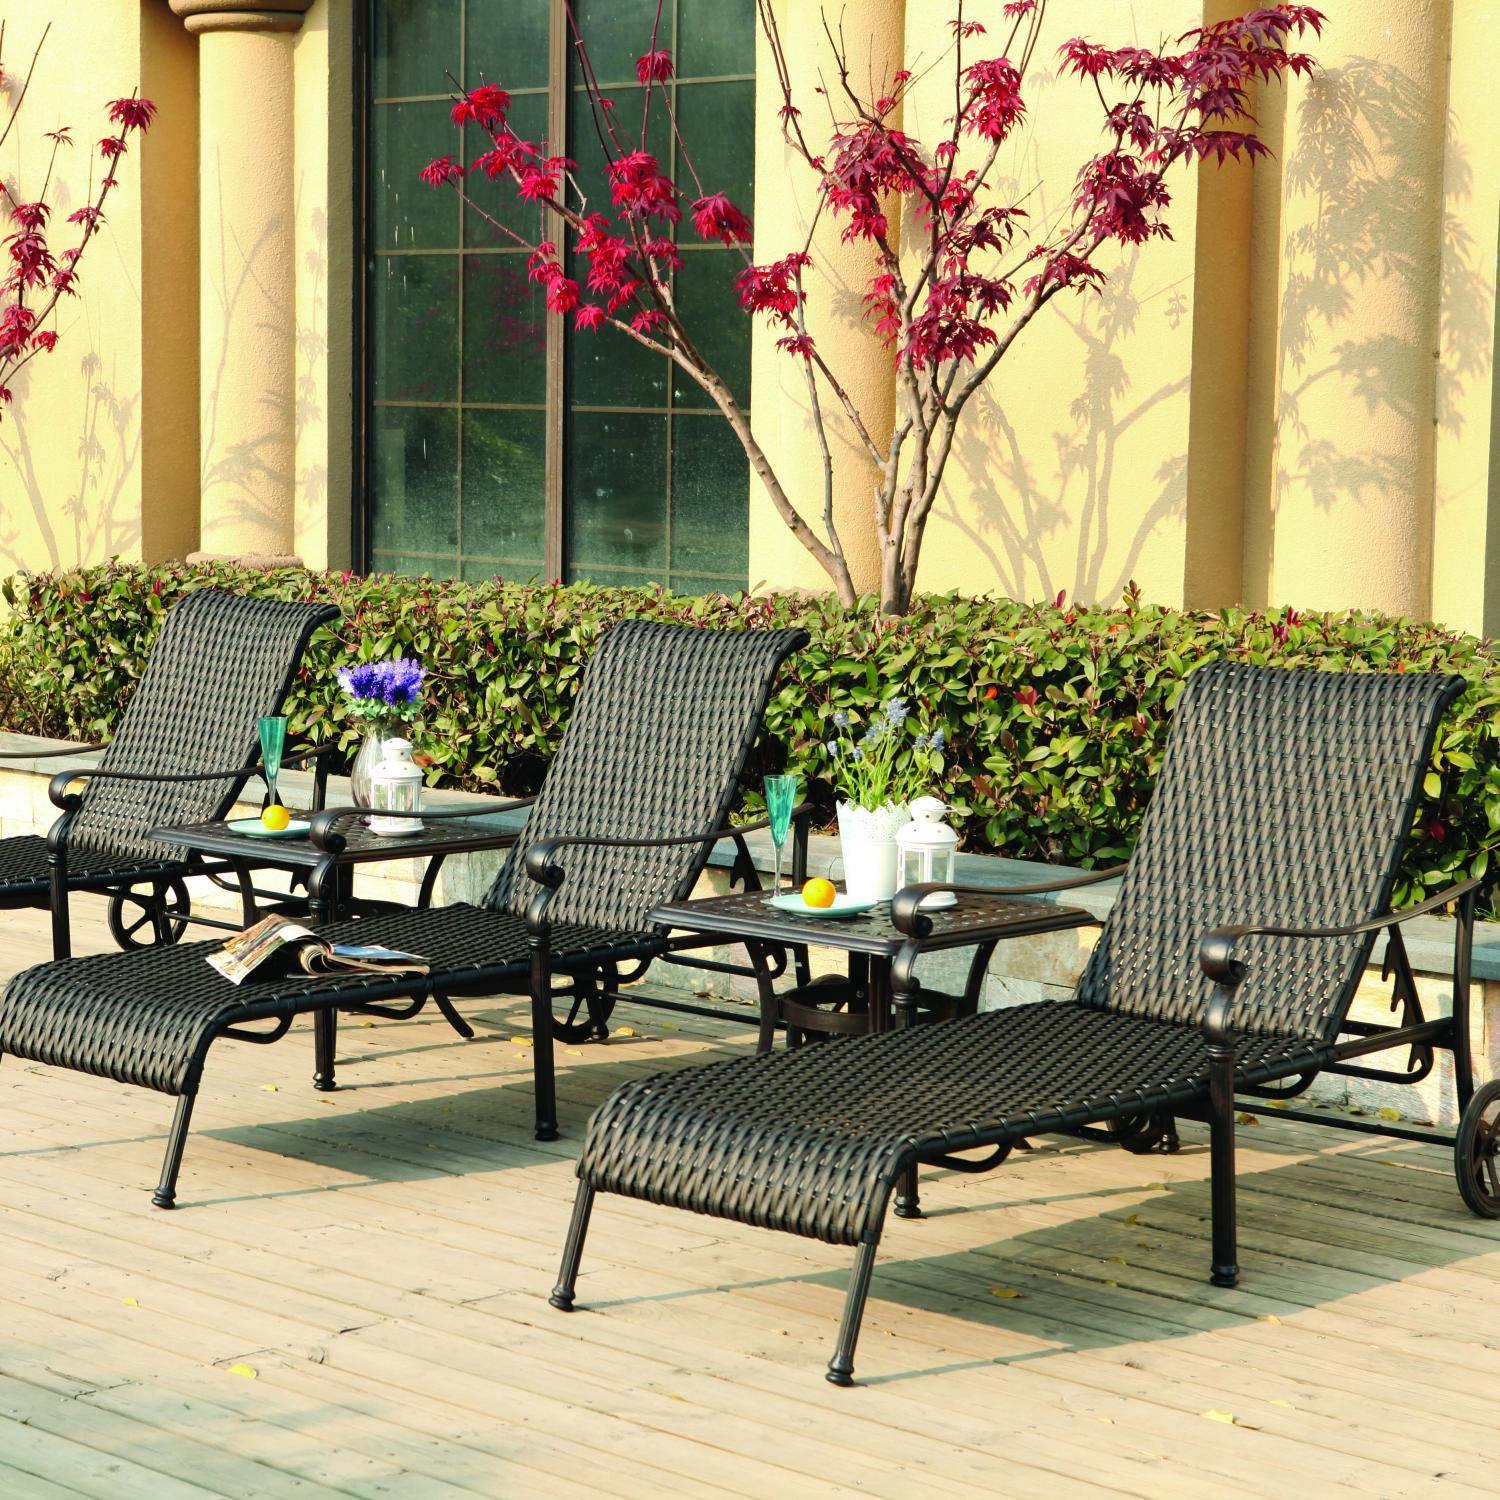 Darlee Victoria 3-person Resin Wicker Patio Chaise Lounge Set - Espresso at Sears.com